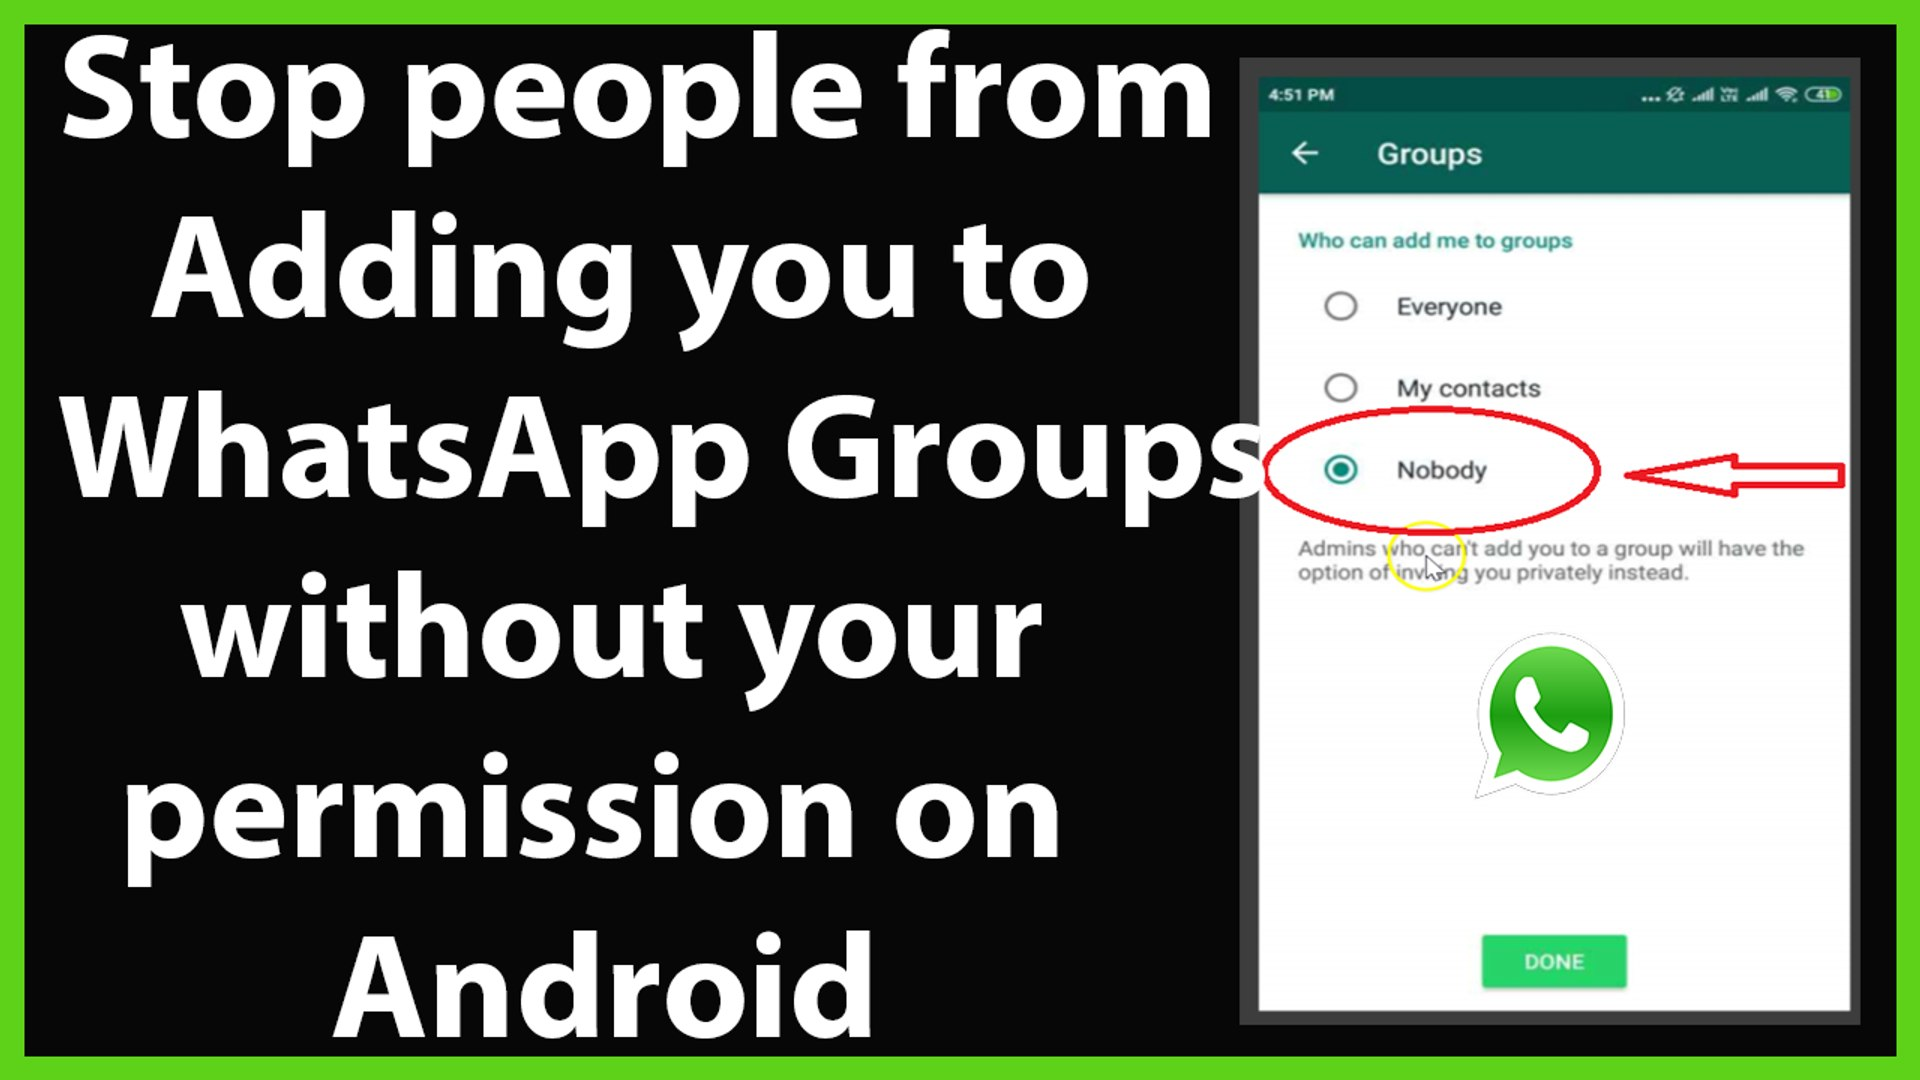 How to Stop People from Adding you to WhatsApp Groups without your Permission on Android?